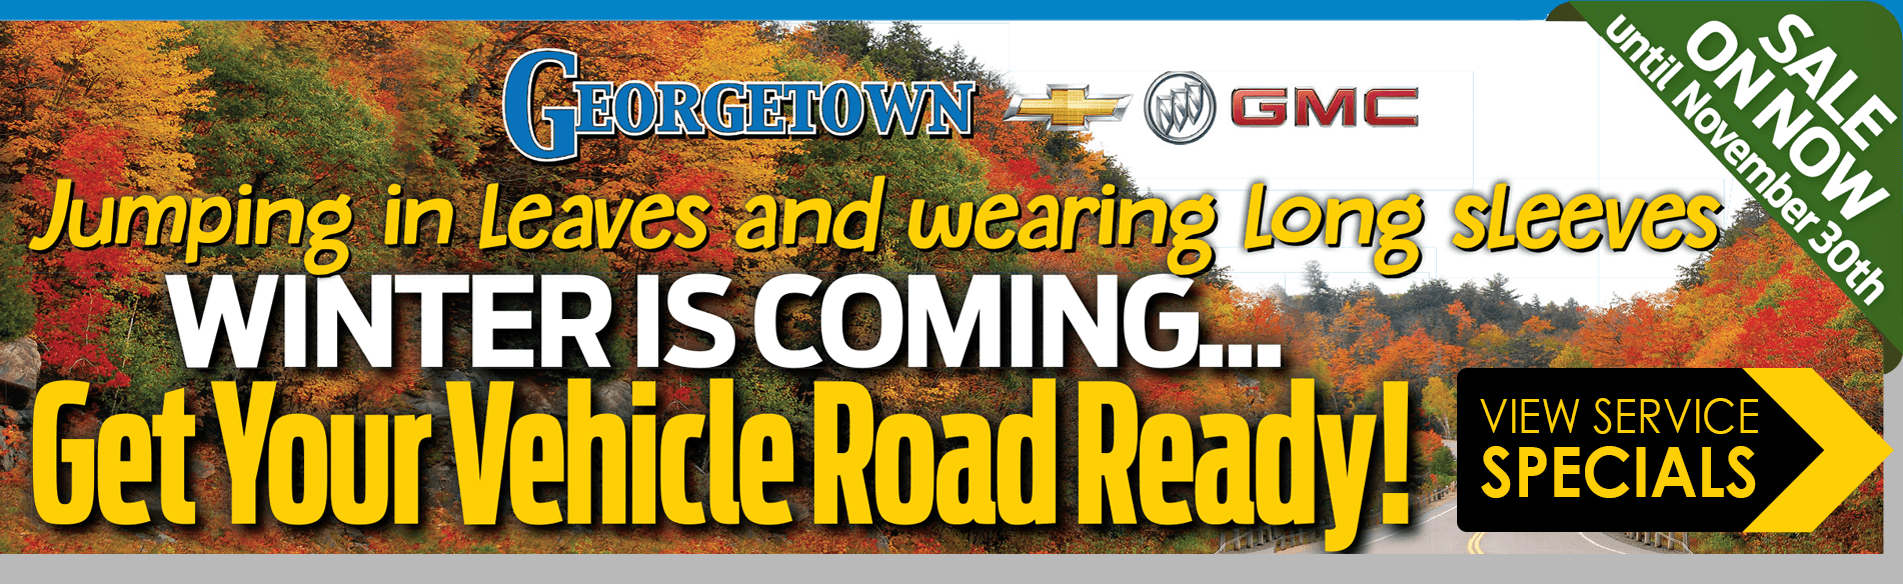 Enjoy great fall Service Specials in Georgetown Ontario from Georgetown Chevrolet Buick GMC